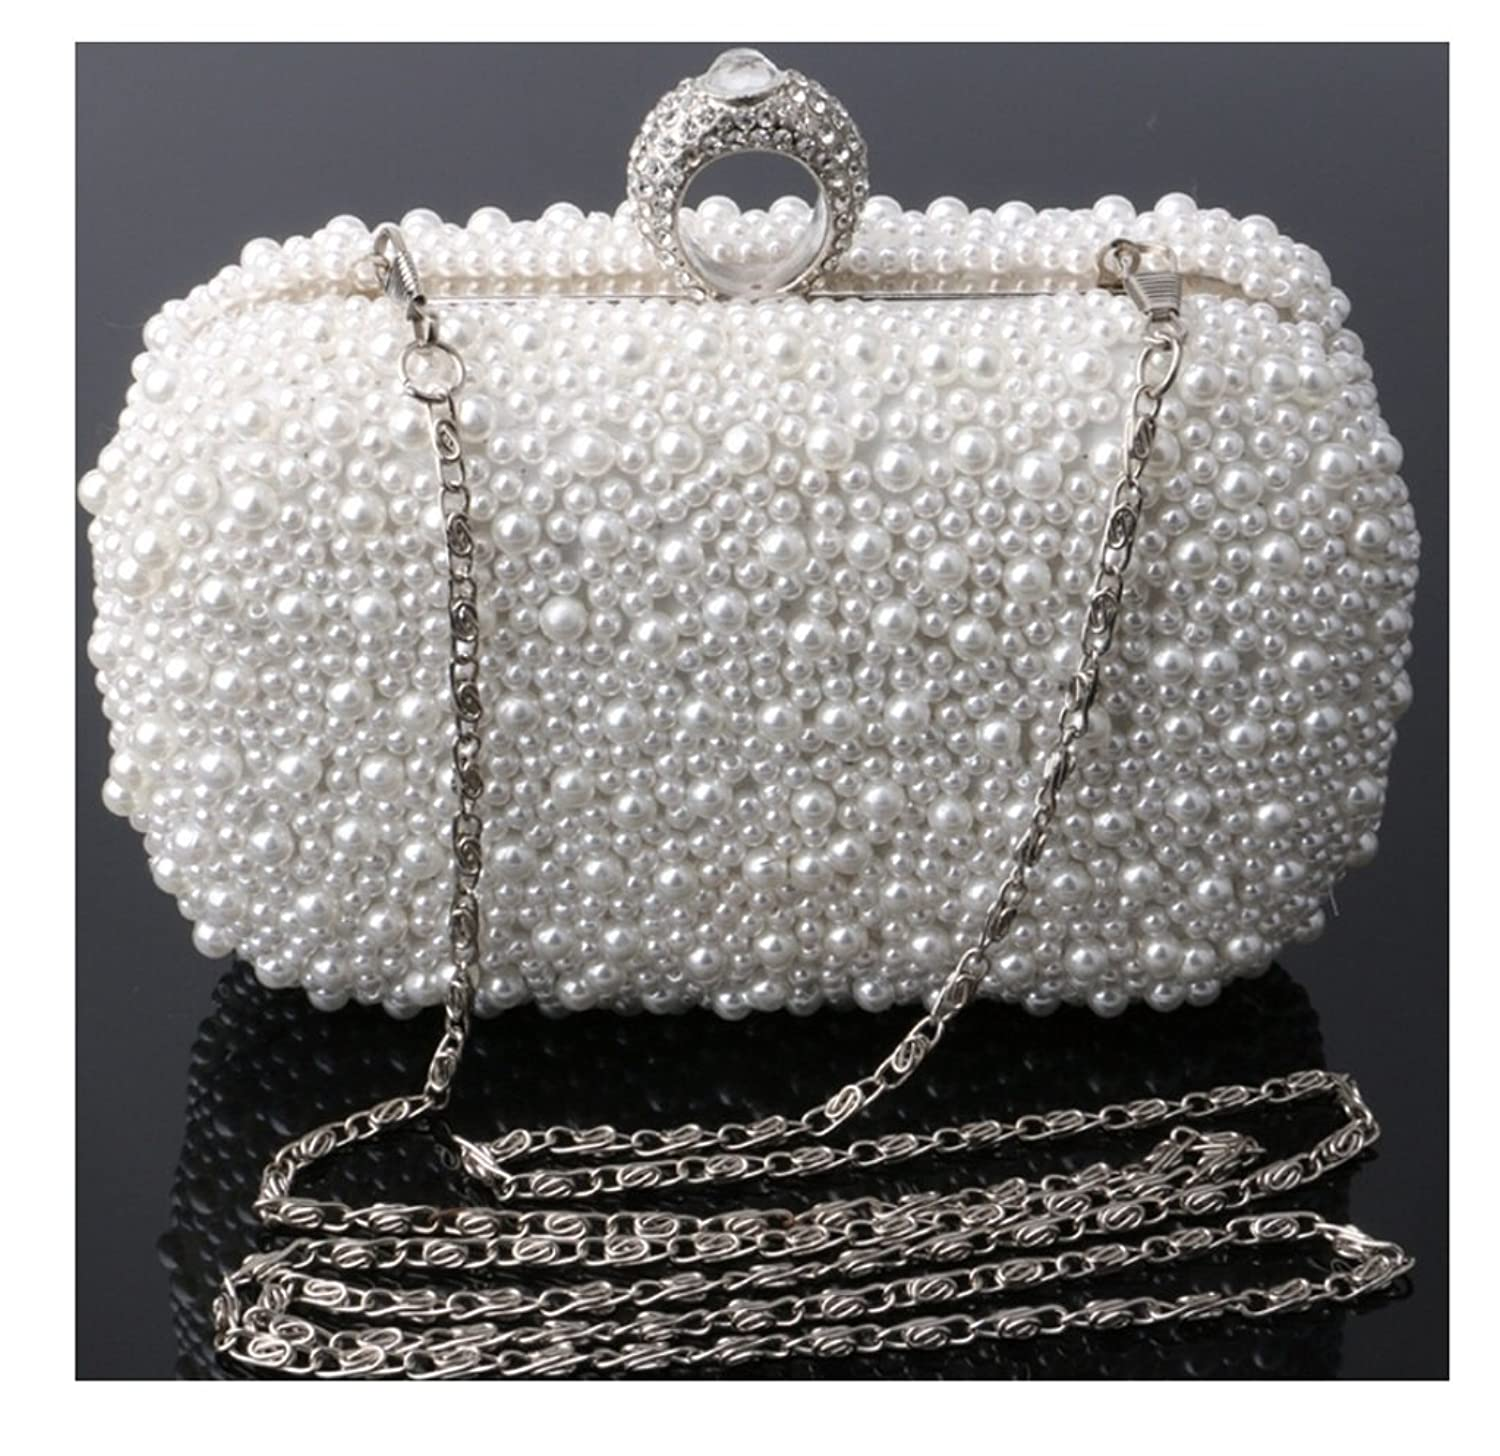 Abless Womens Glamour Elegant Evening Clutch Fashion Purse Chain Handbag -SK1118